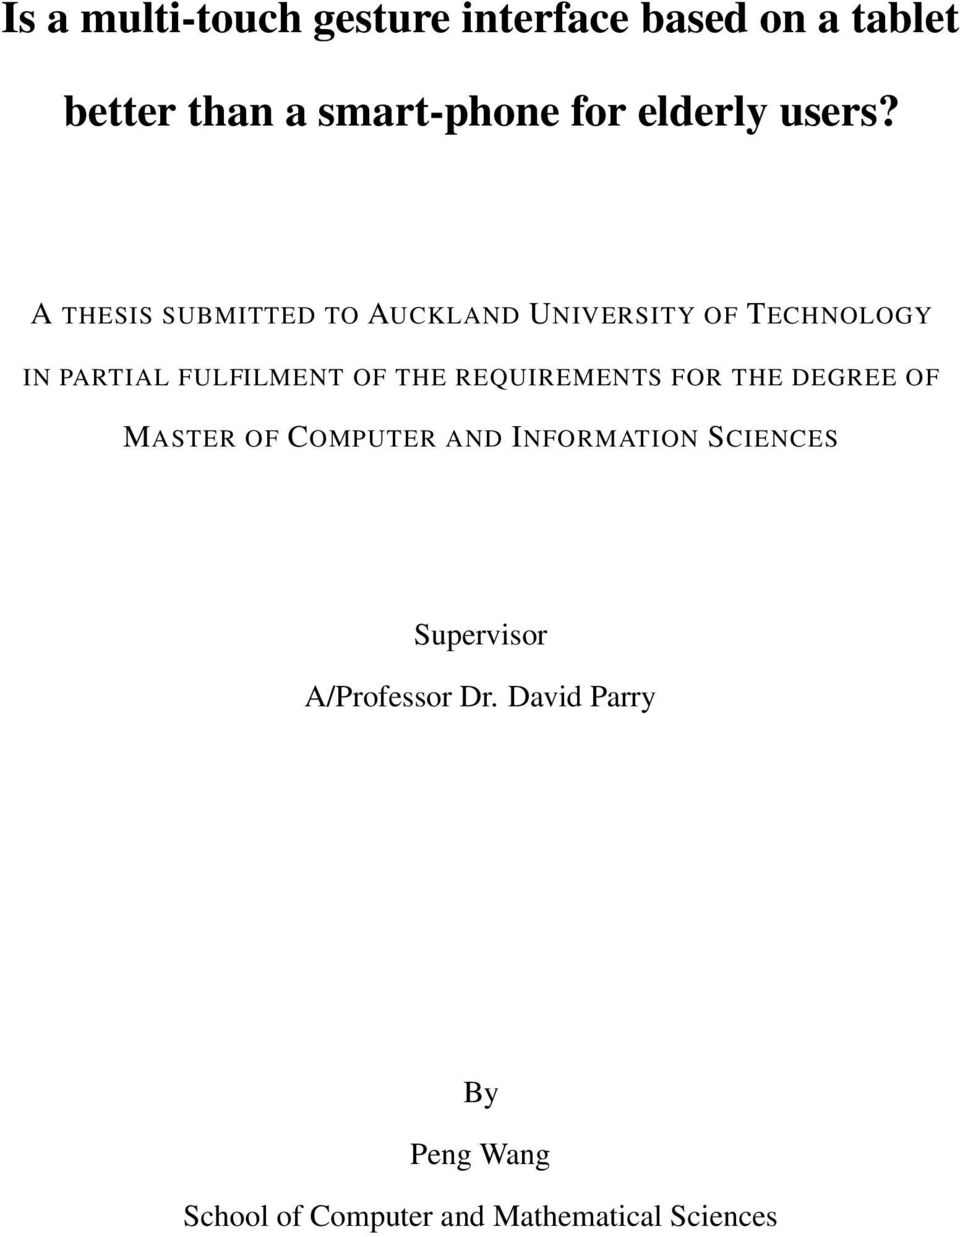 A THESIS SUBMITTED TO AUCKLAND UNIVERSITY OF TECHNOLOGY IN PARTIAL FULFILMENT OF THE